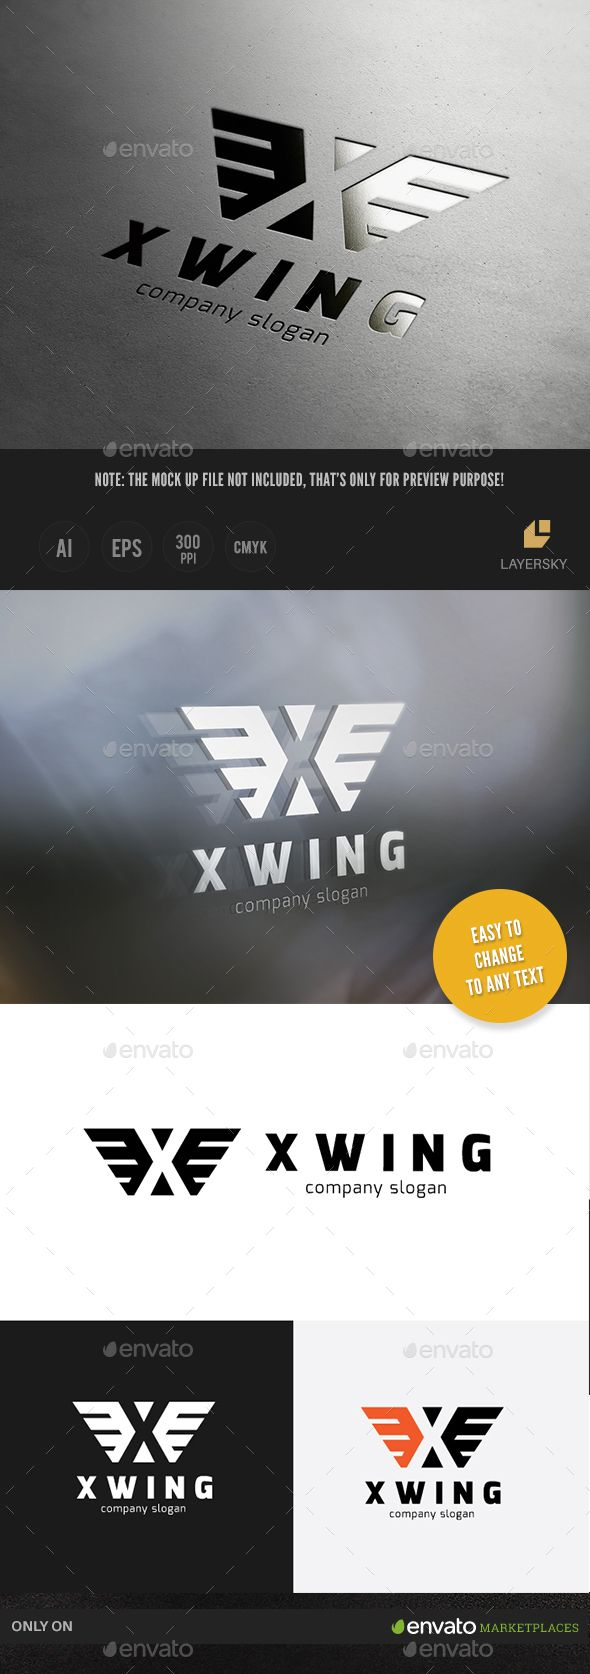 X Wing Logo Template Vector EPS, AI. Download here: http://graphicriver.net/item/x-wing-logo/15069031?ref=ksioks